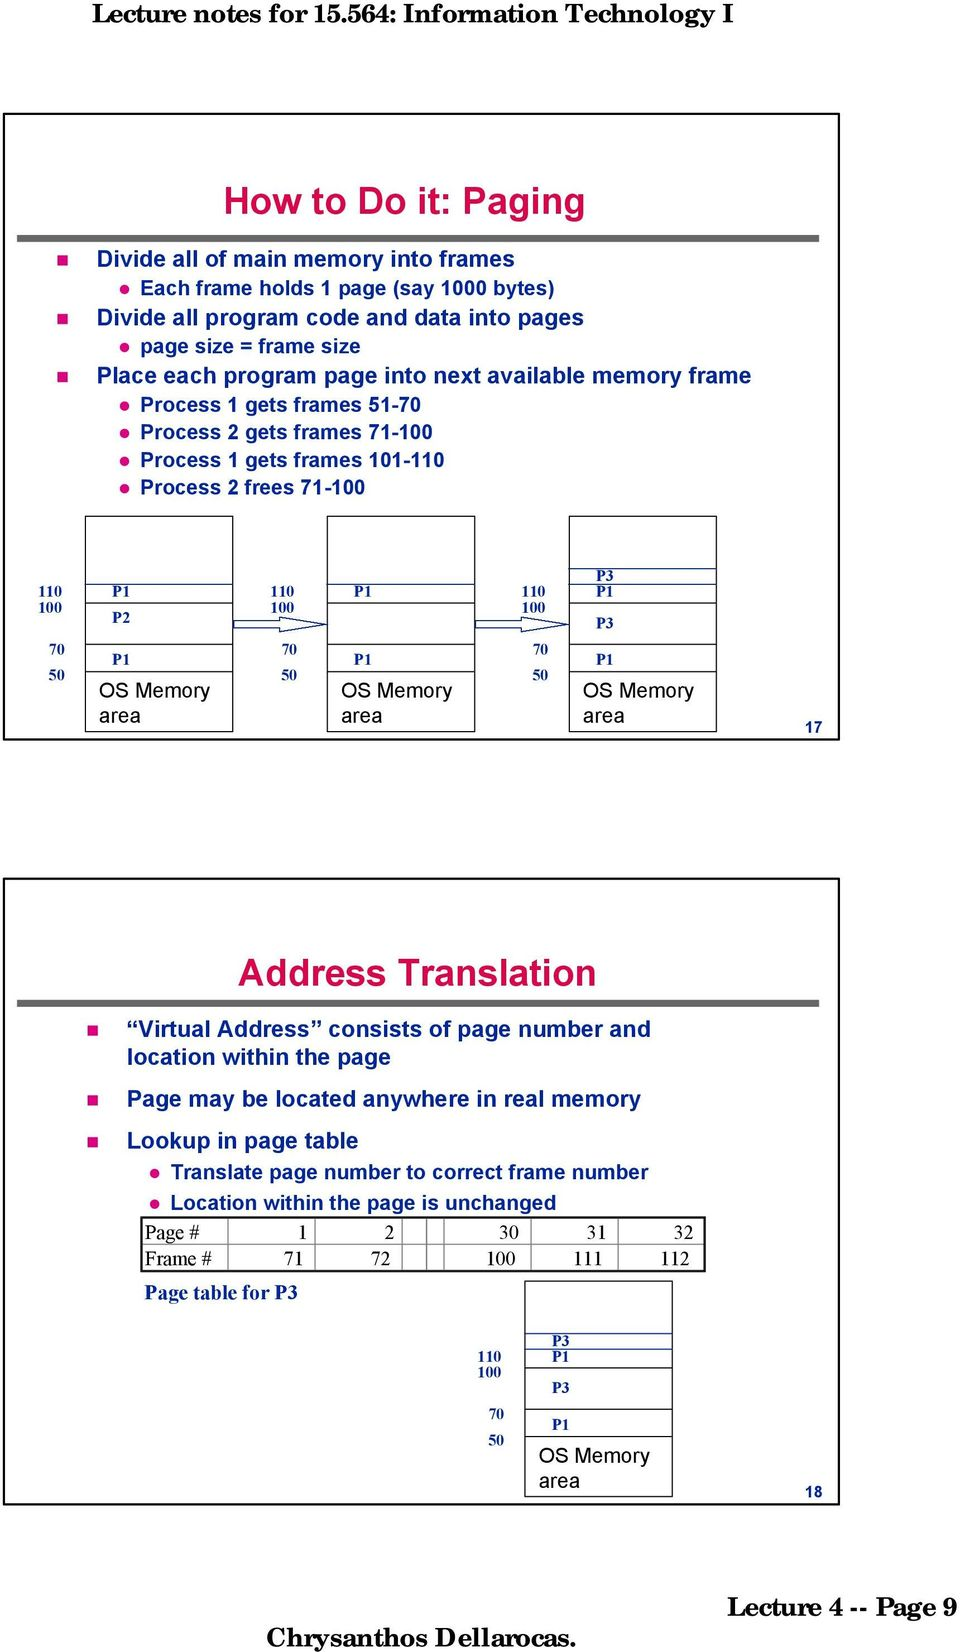 50 50 50 OS Memory OS Memory OS Memory area area area 17 Address Translation Virtual Address consists of page number and location within the page Page may be located anywhere in real memory Lookup in